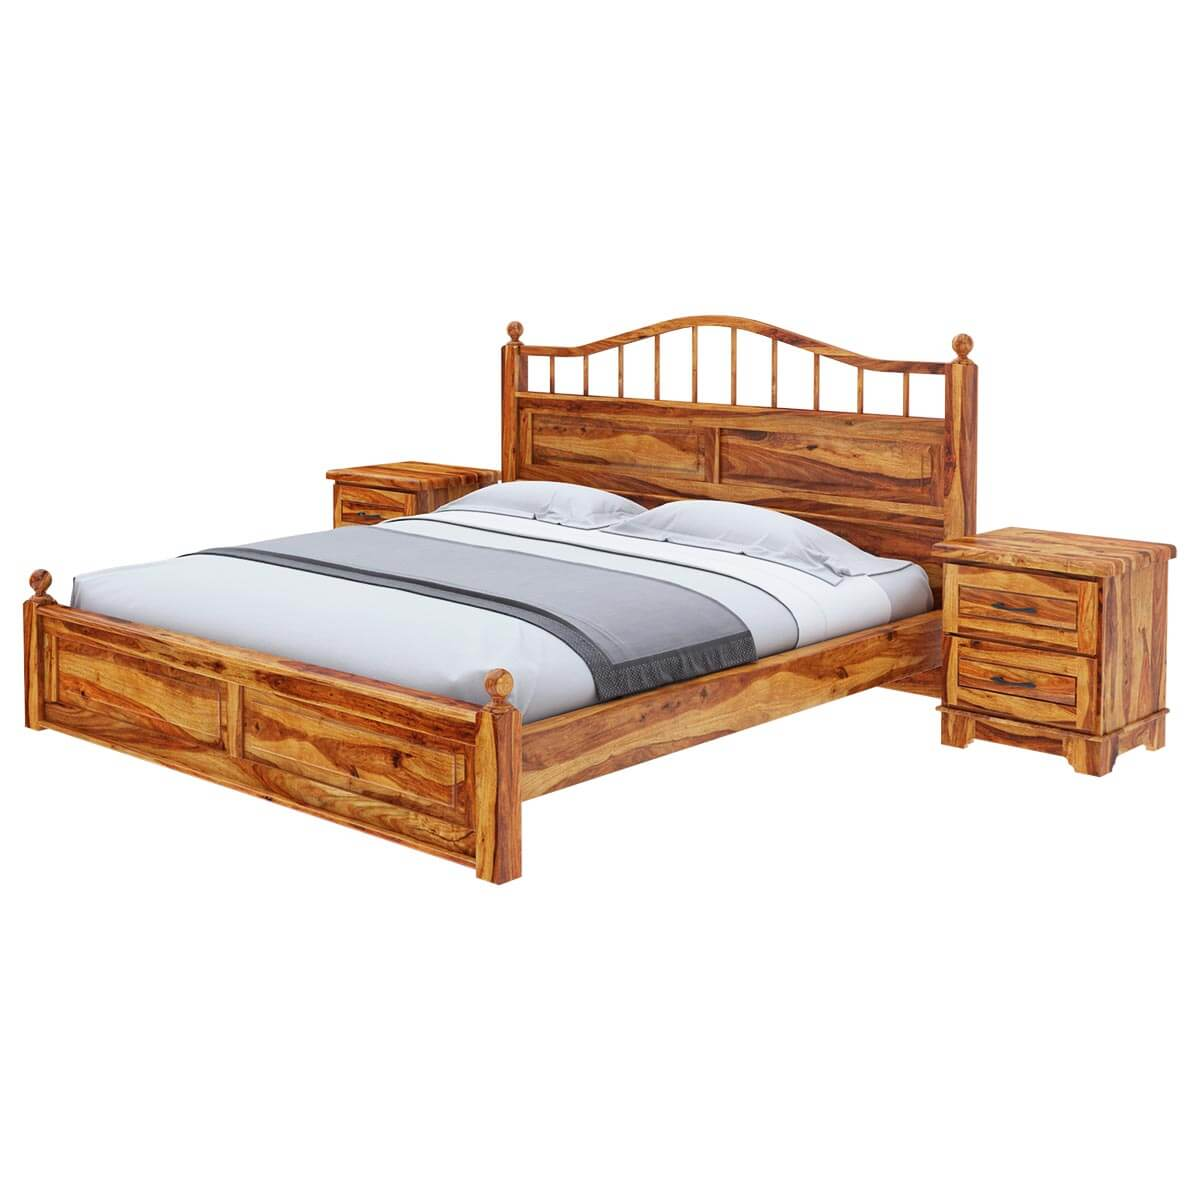 Colonial rail top solid wood platform bed frame Wood platform bed